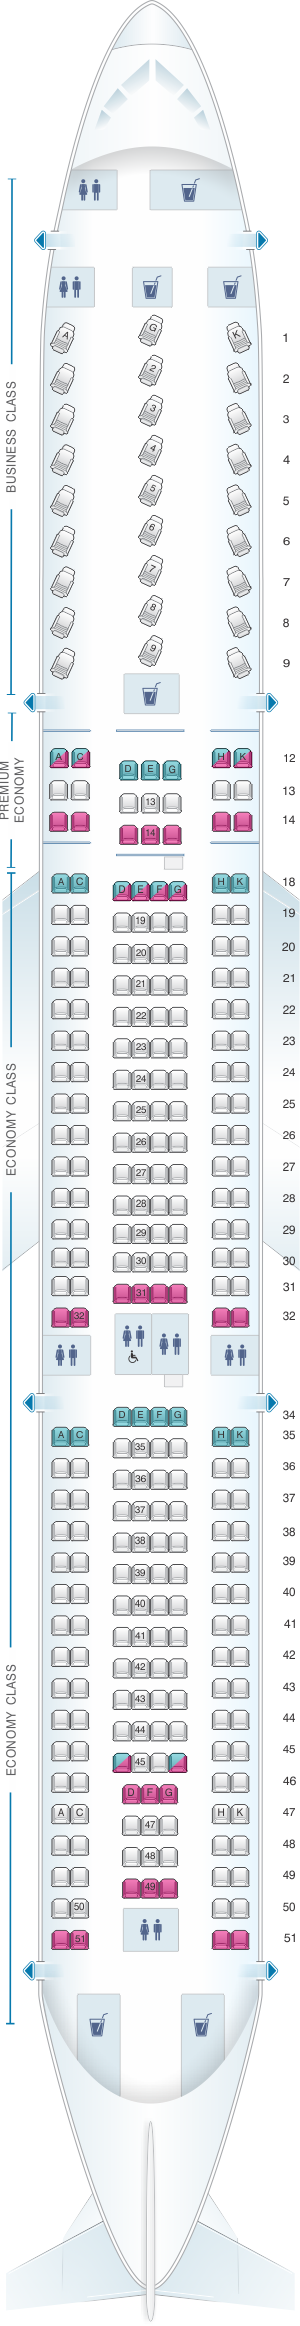 Seat map for Air Canada Airbus A330 300